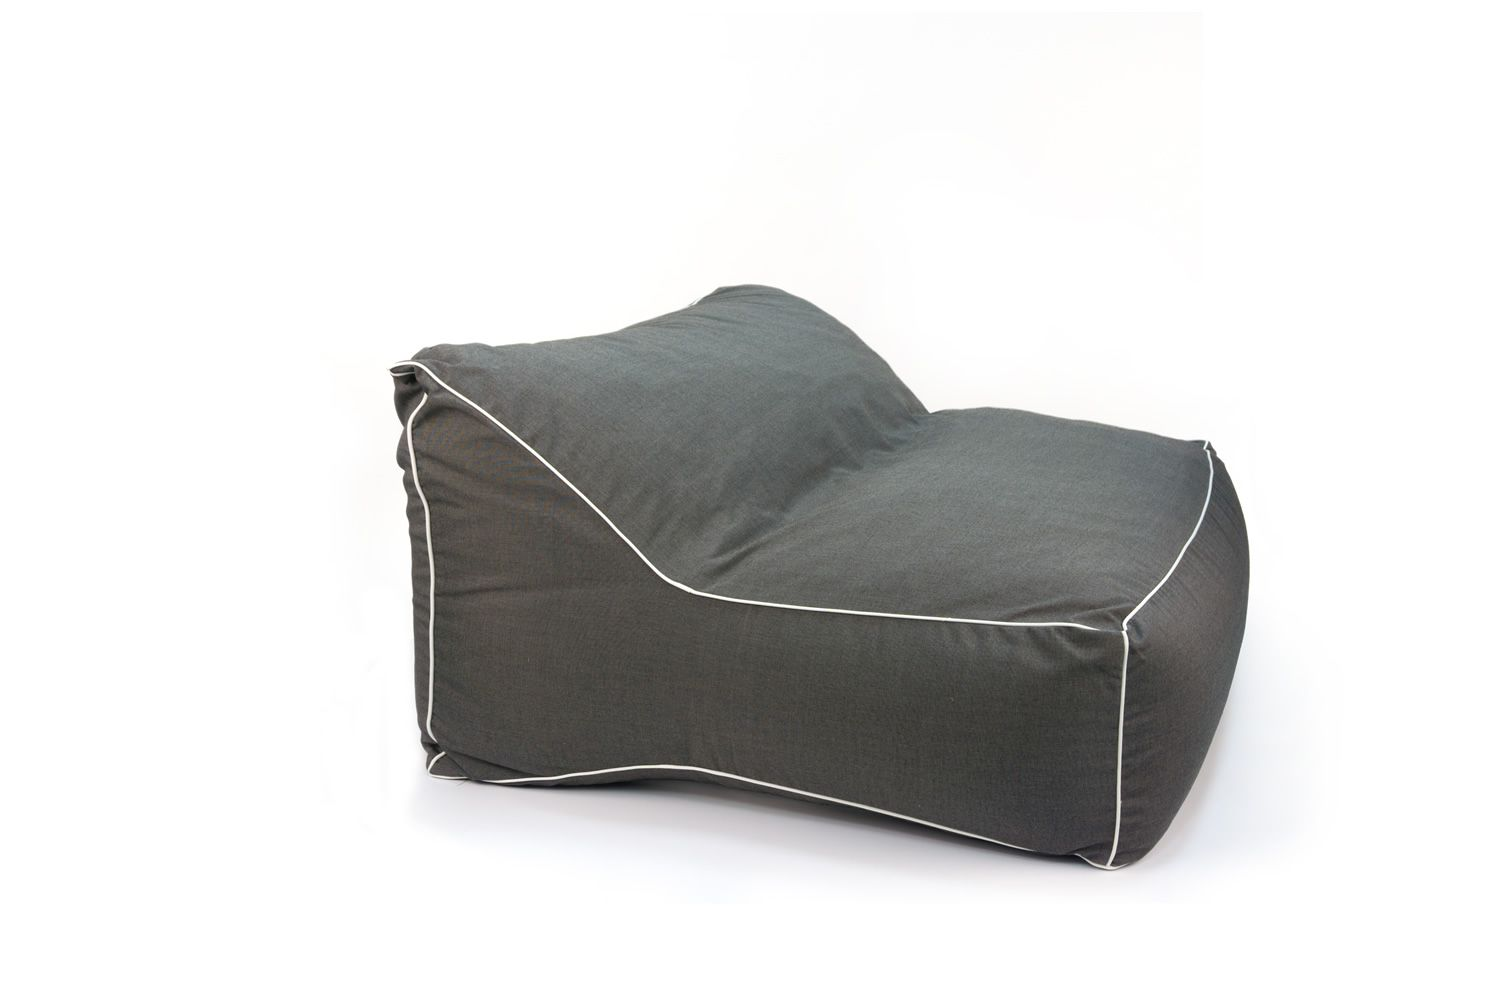 sacco pouf fauteuil pour l 39 ext rieur diff rentes dimensions et couleurs sediarreda. Black Bedroom Furniture Sets. Home Design Ideas